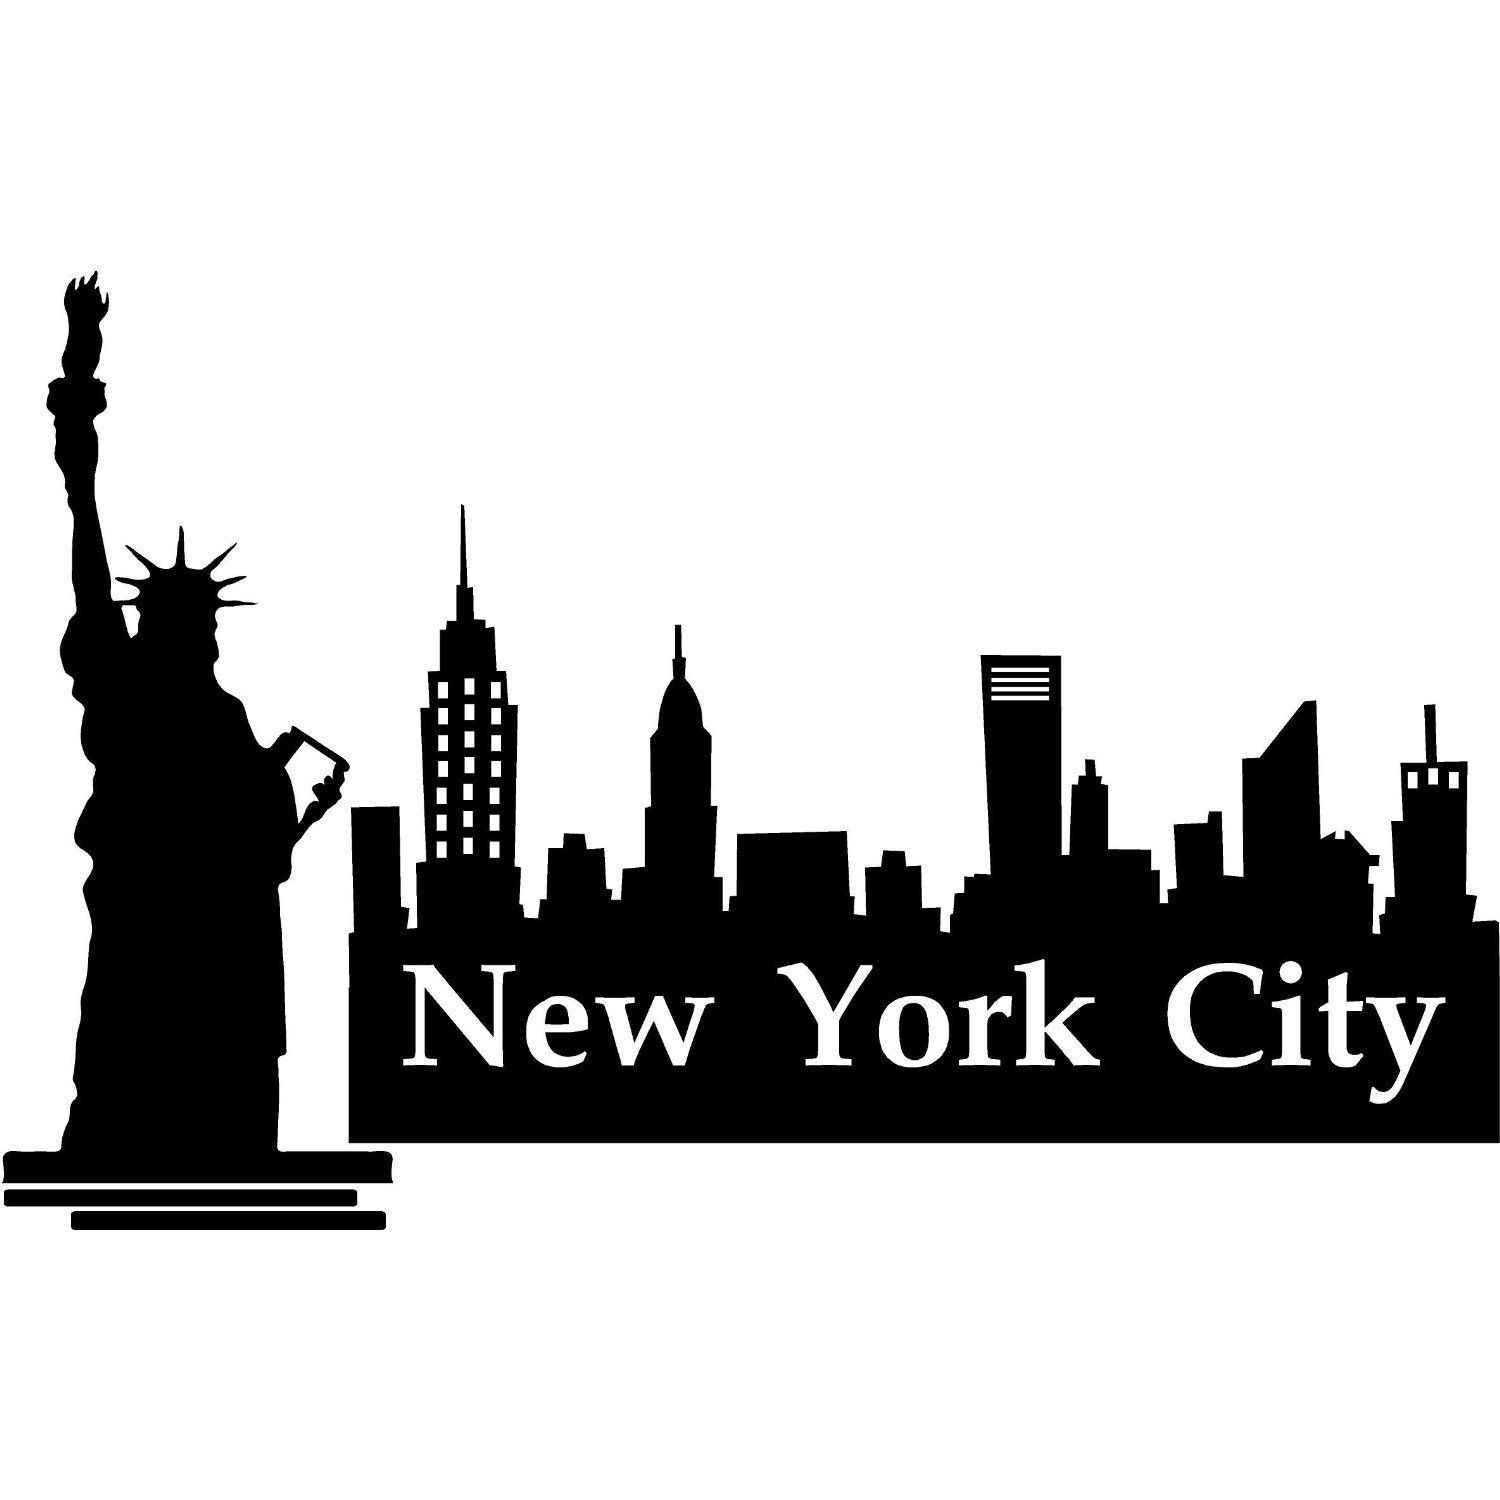 Statue Of Liberty Wall Sticker New York Skyline Black And White Silhouette 61vzi2tm7pl